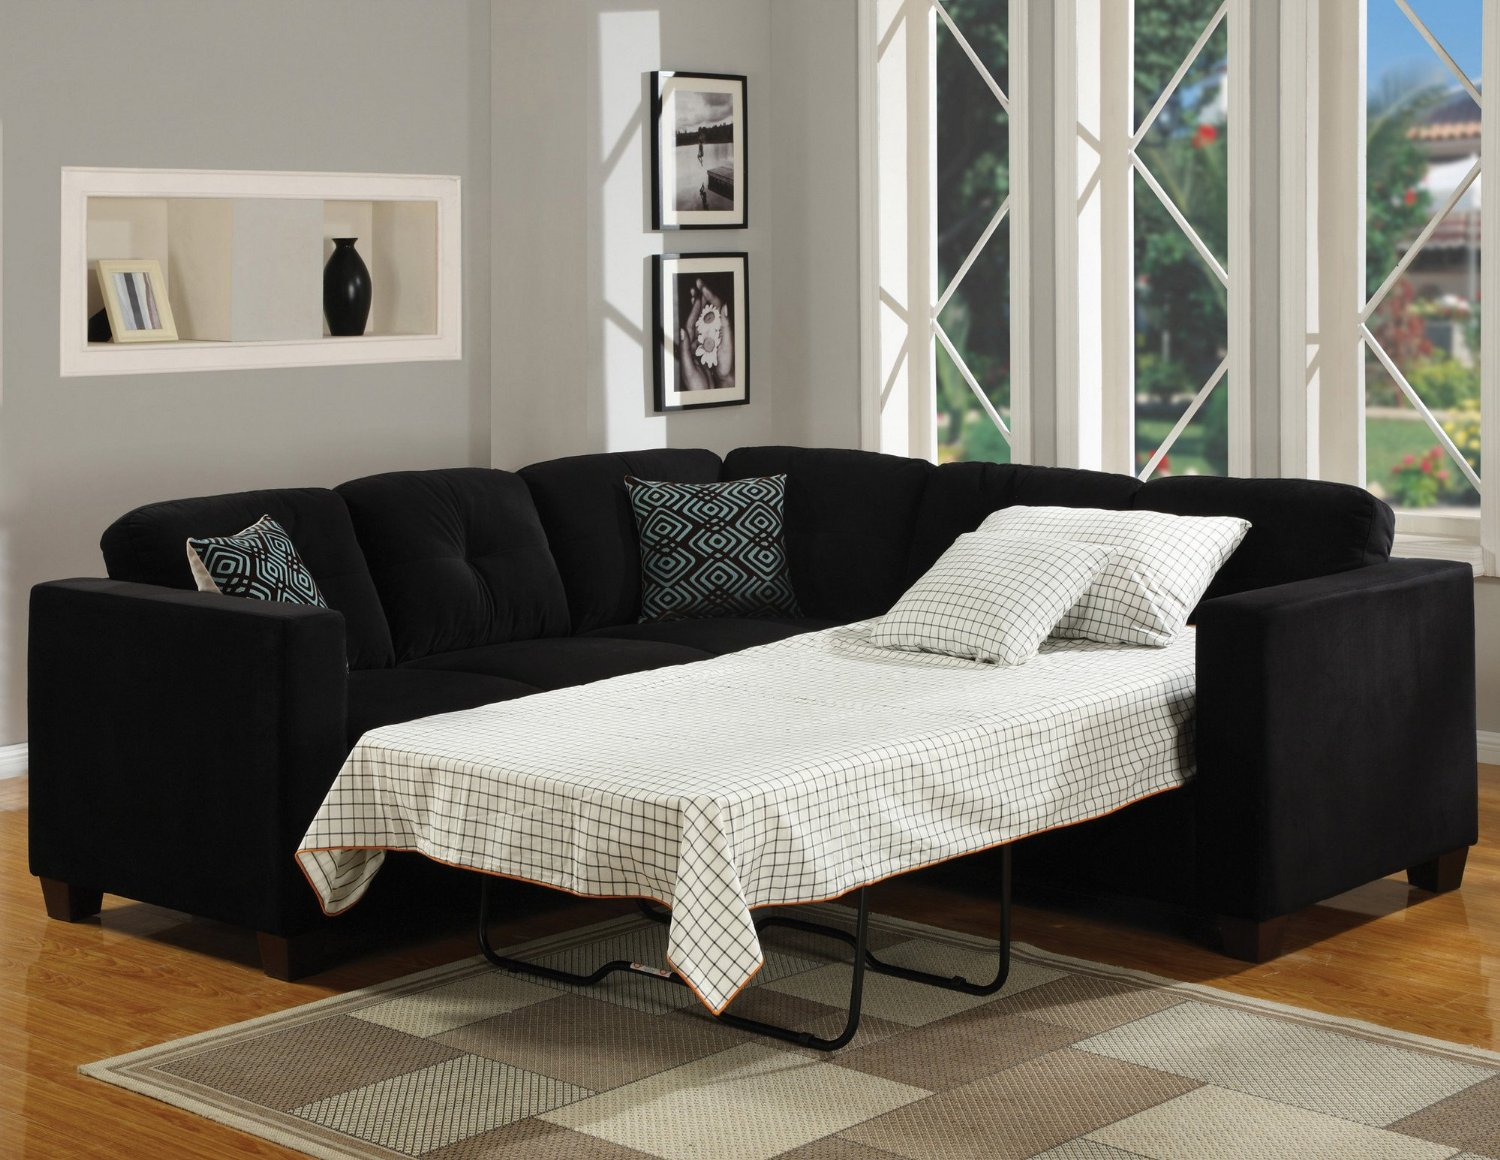 small sectional sofa black photo - 5